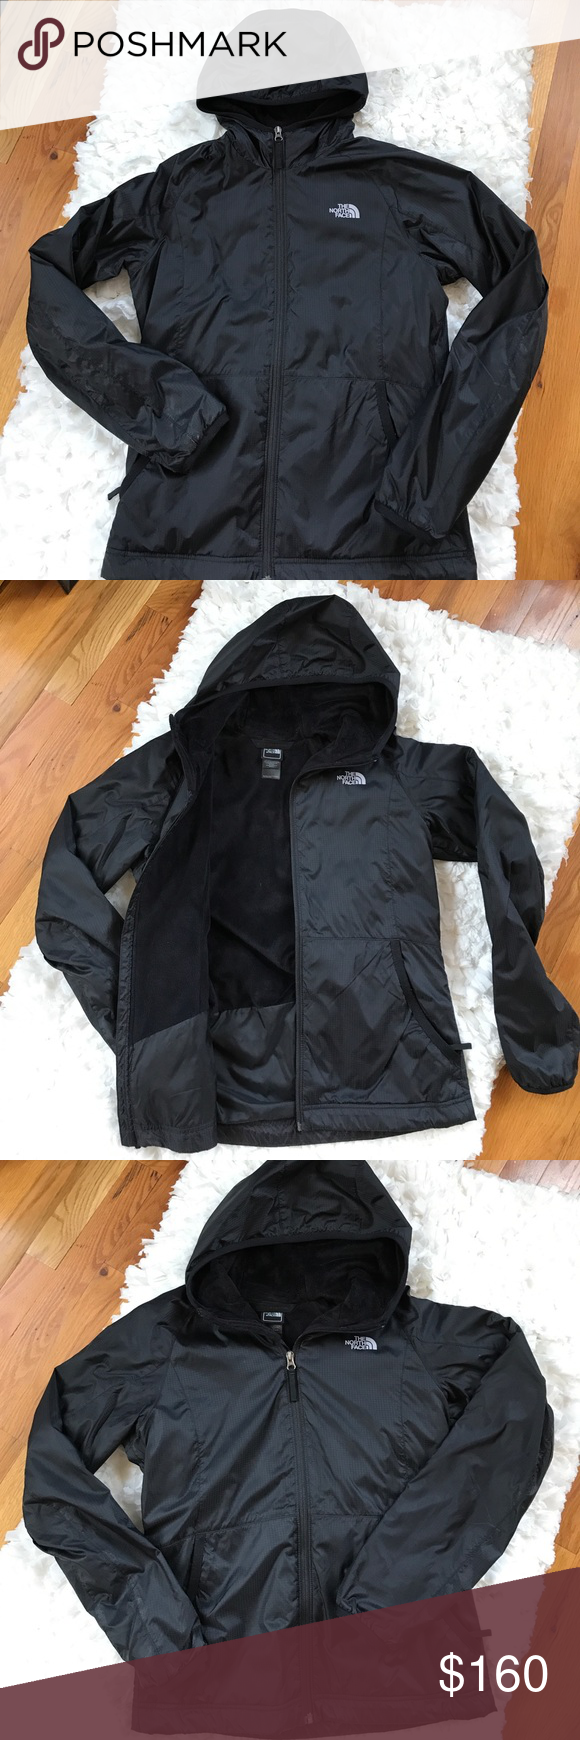 Price Drop North Face Jacket North Face Hooded Jacket North Face Jacket Clothes Design [ 1740 x 580 Pixel ]